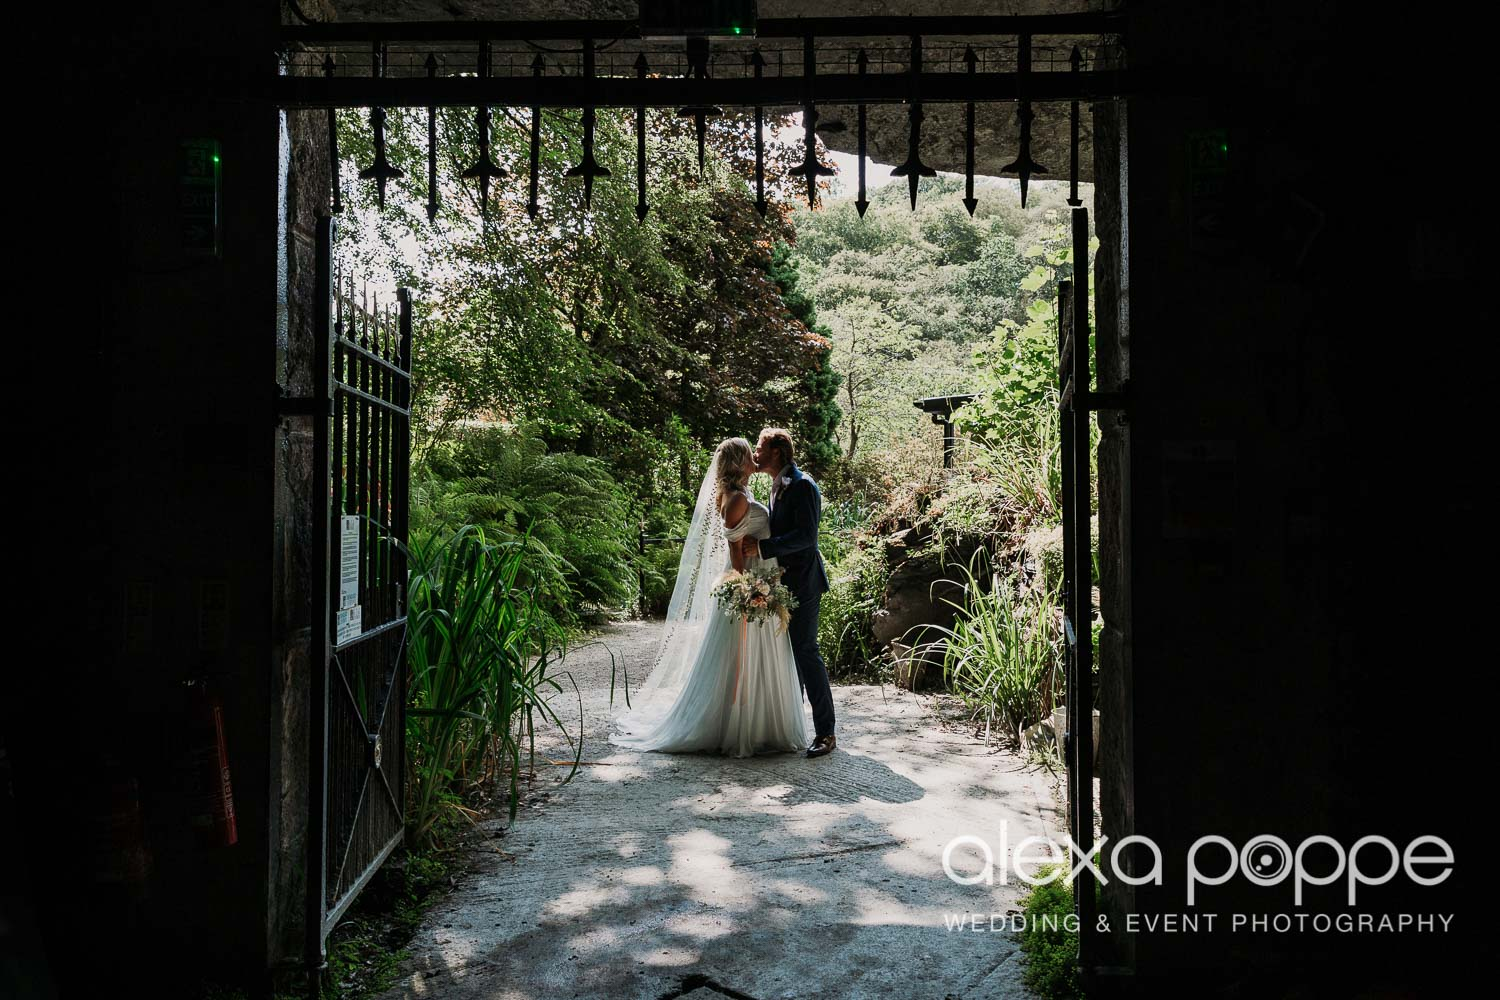 VA_wedding_edenproject_carnglaze_31.jpg